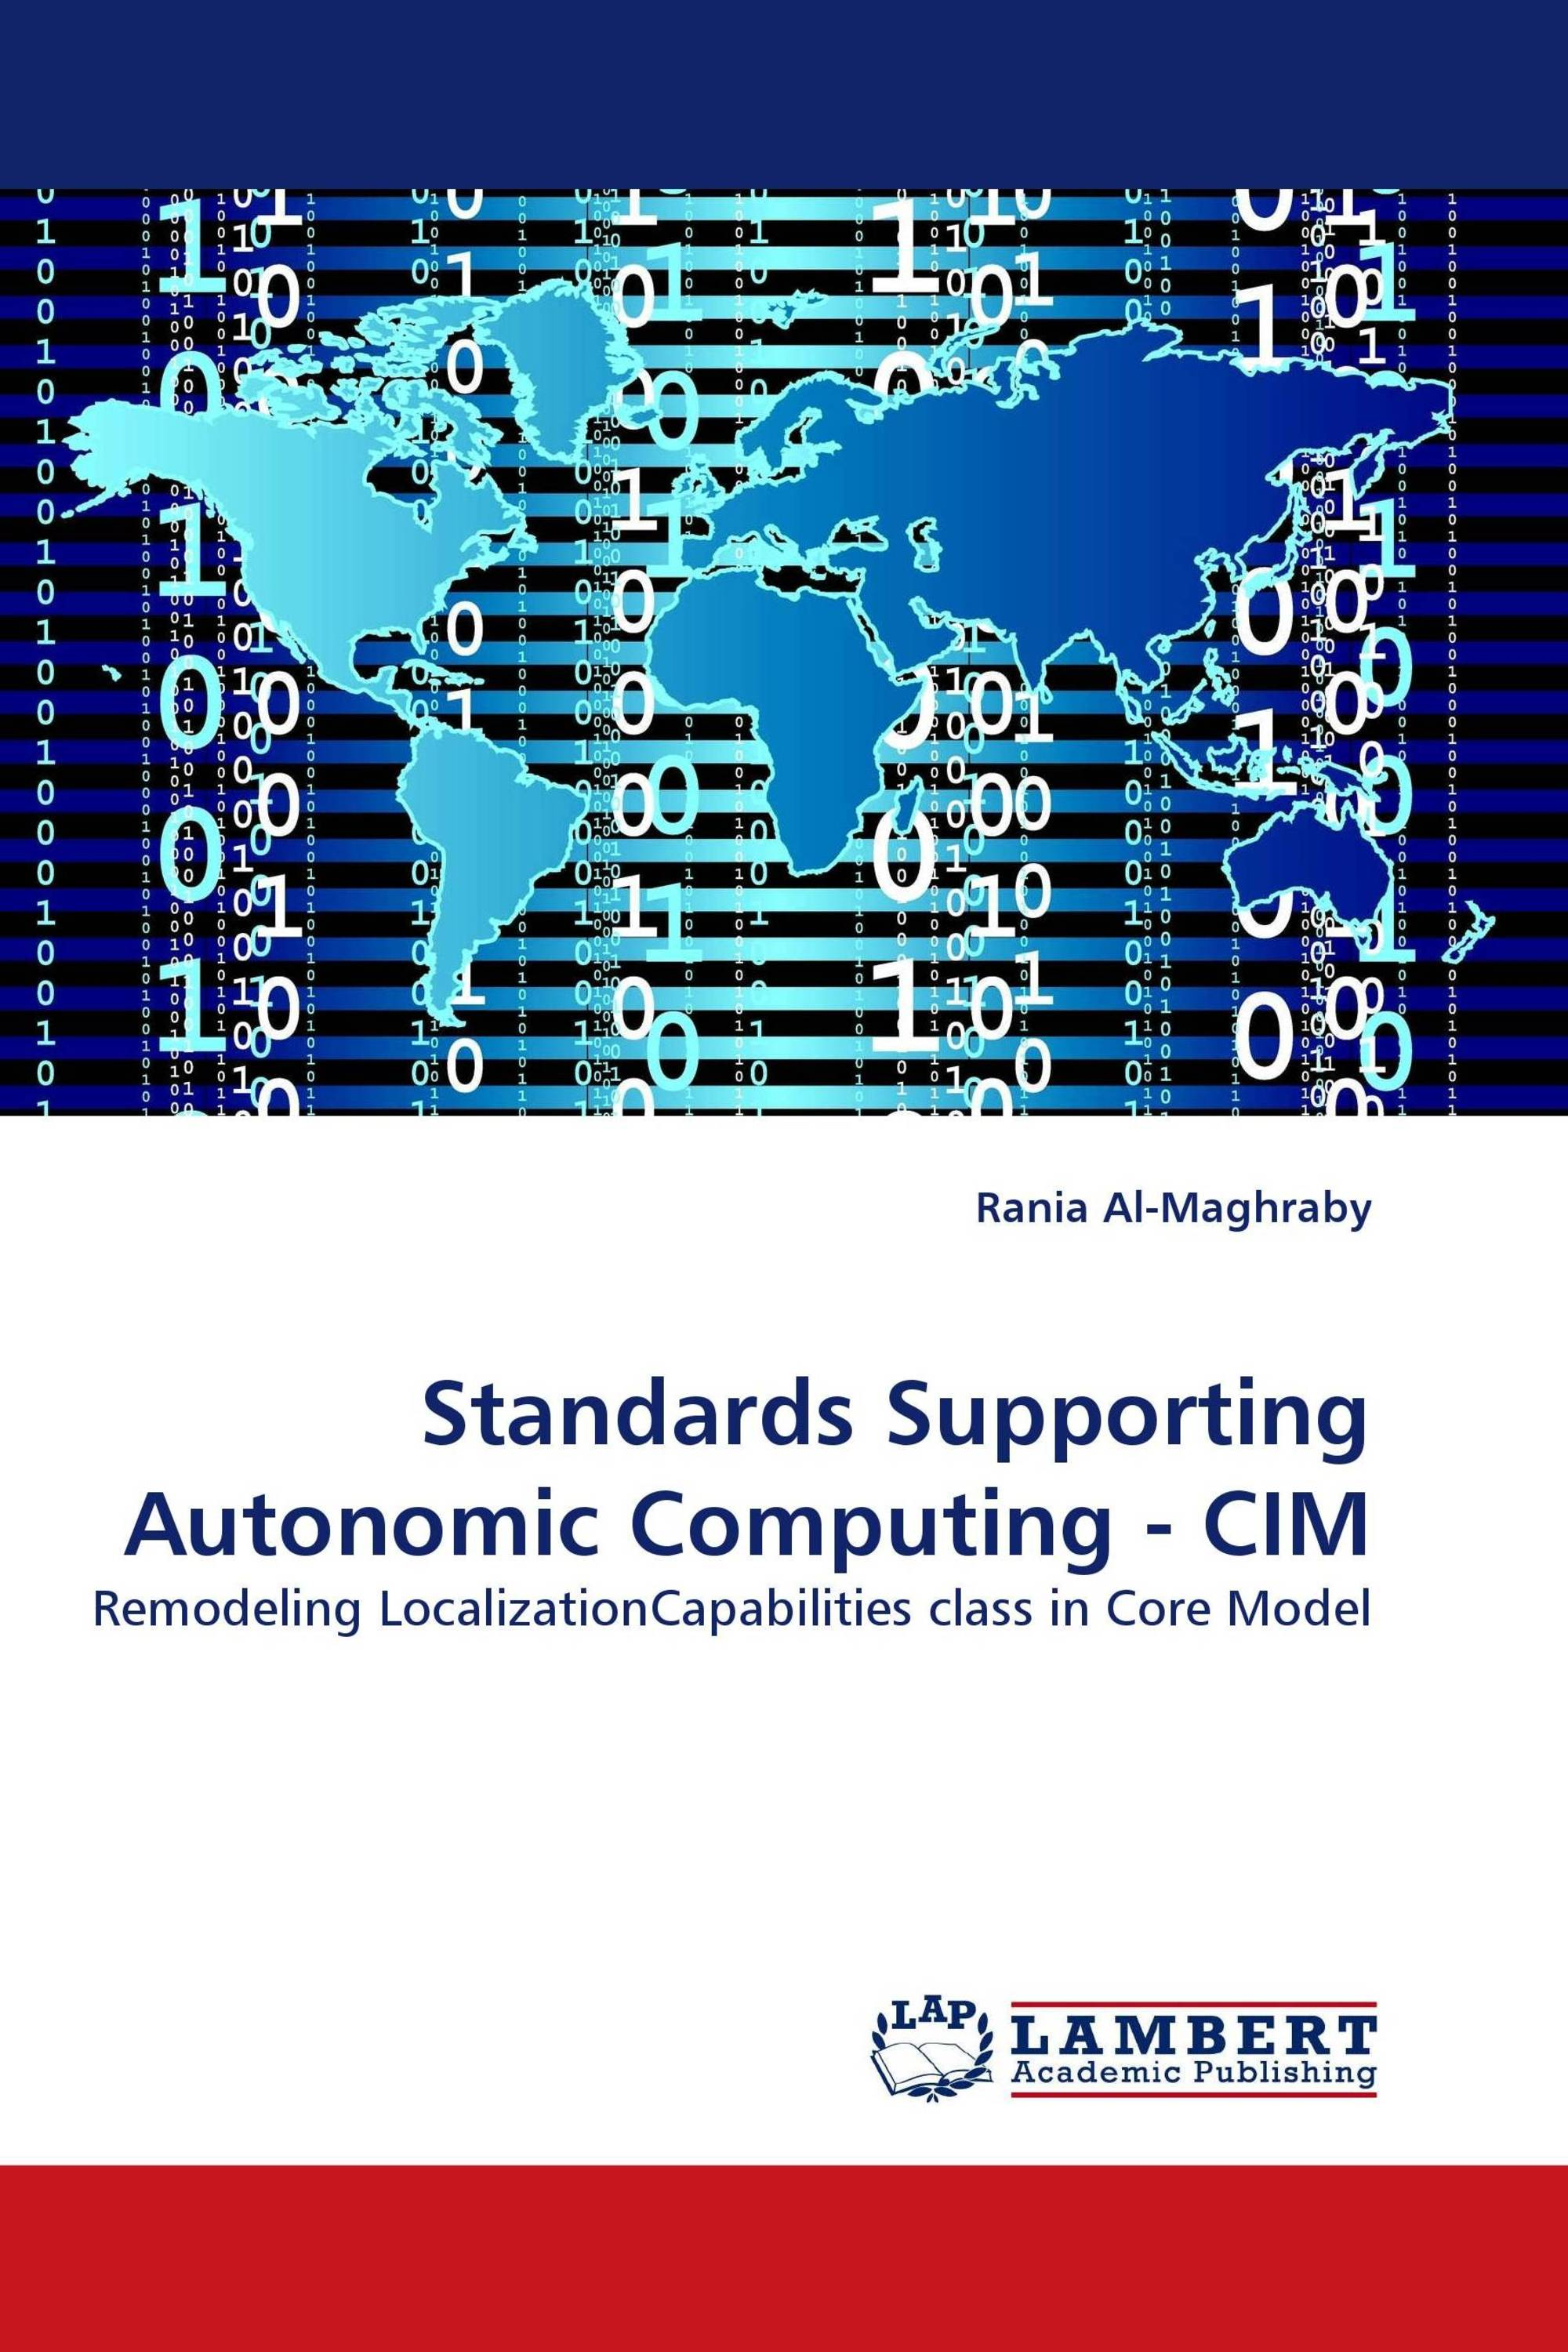 Standards Supporting Autonomic Computing - CIM